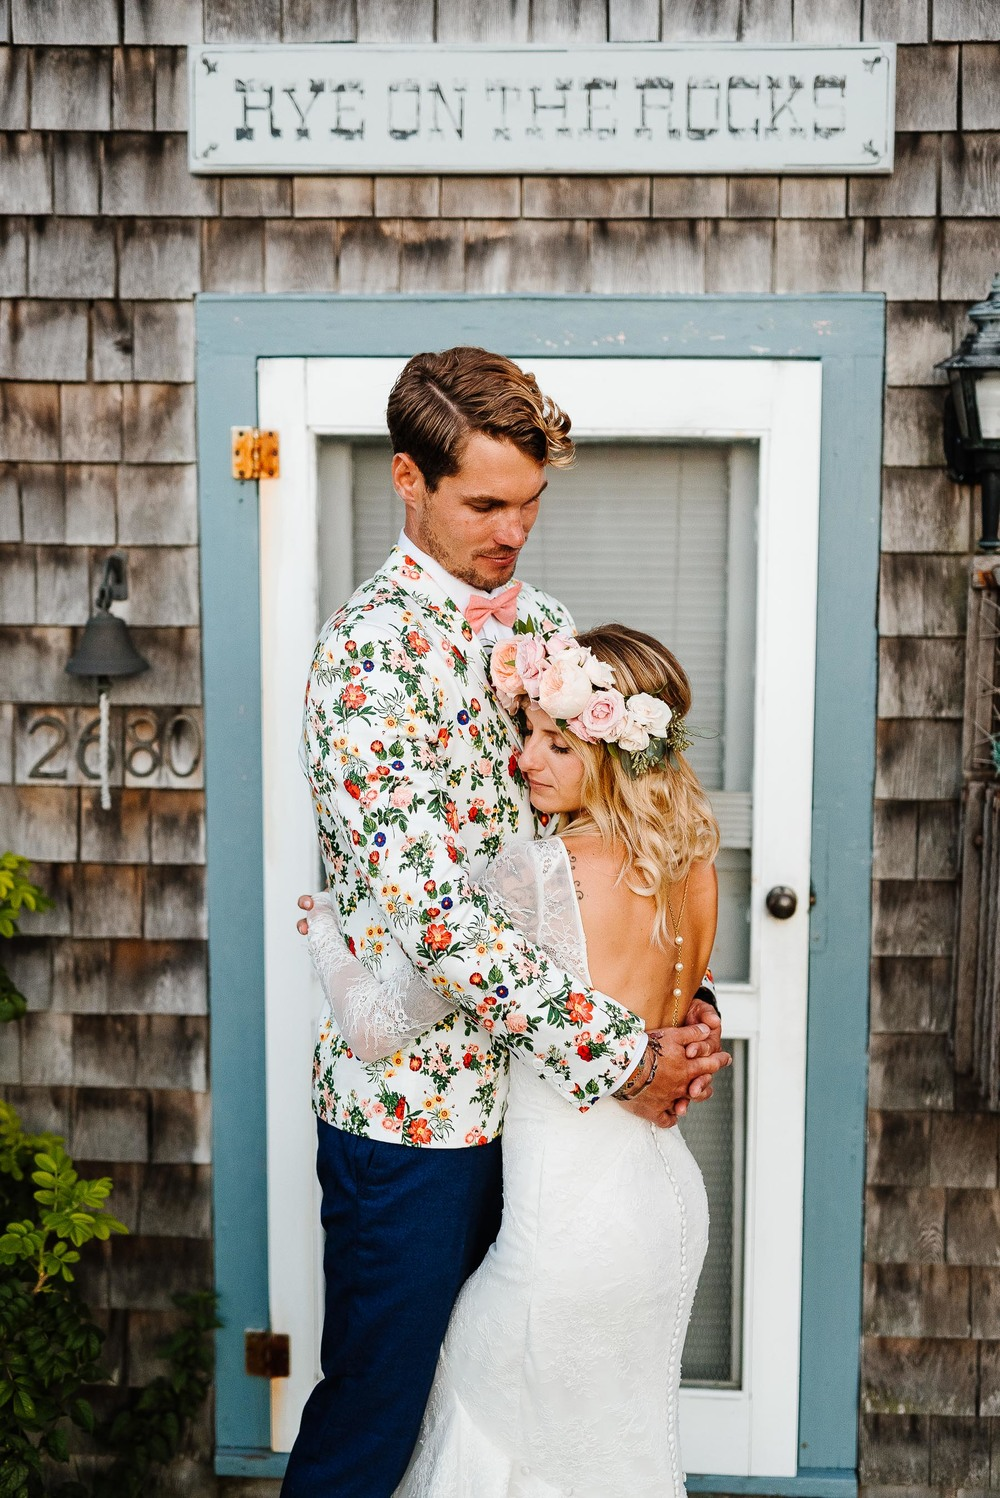 211-Bohemian+New+Hampshire+Beach+Wedding+Rye+New+Hampshire+Weddings+Summer+Sessions+Surf+Shop+Longbrook+Photography.jpg